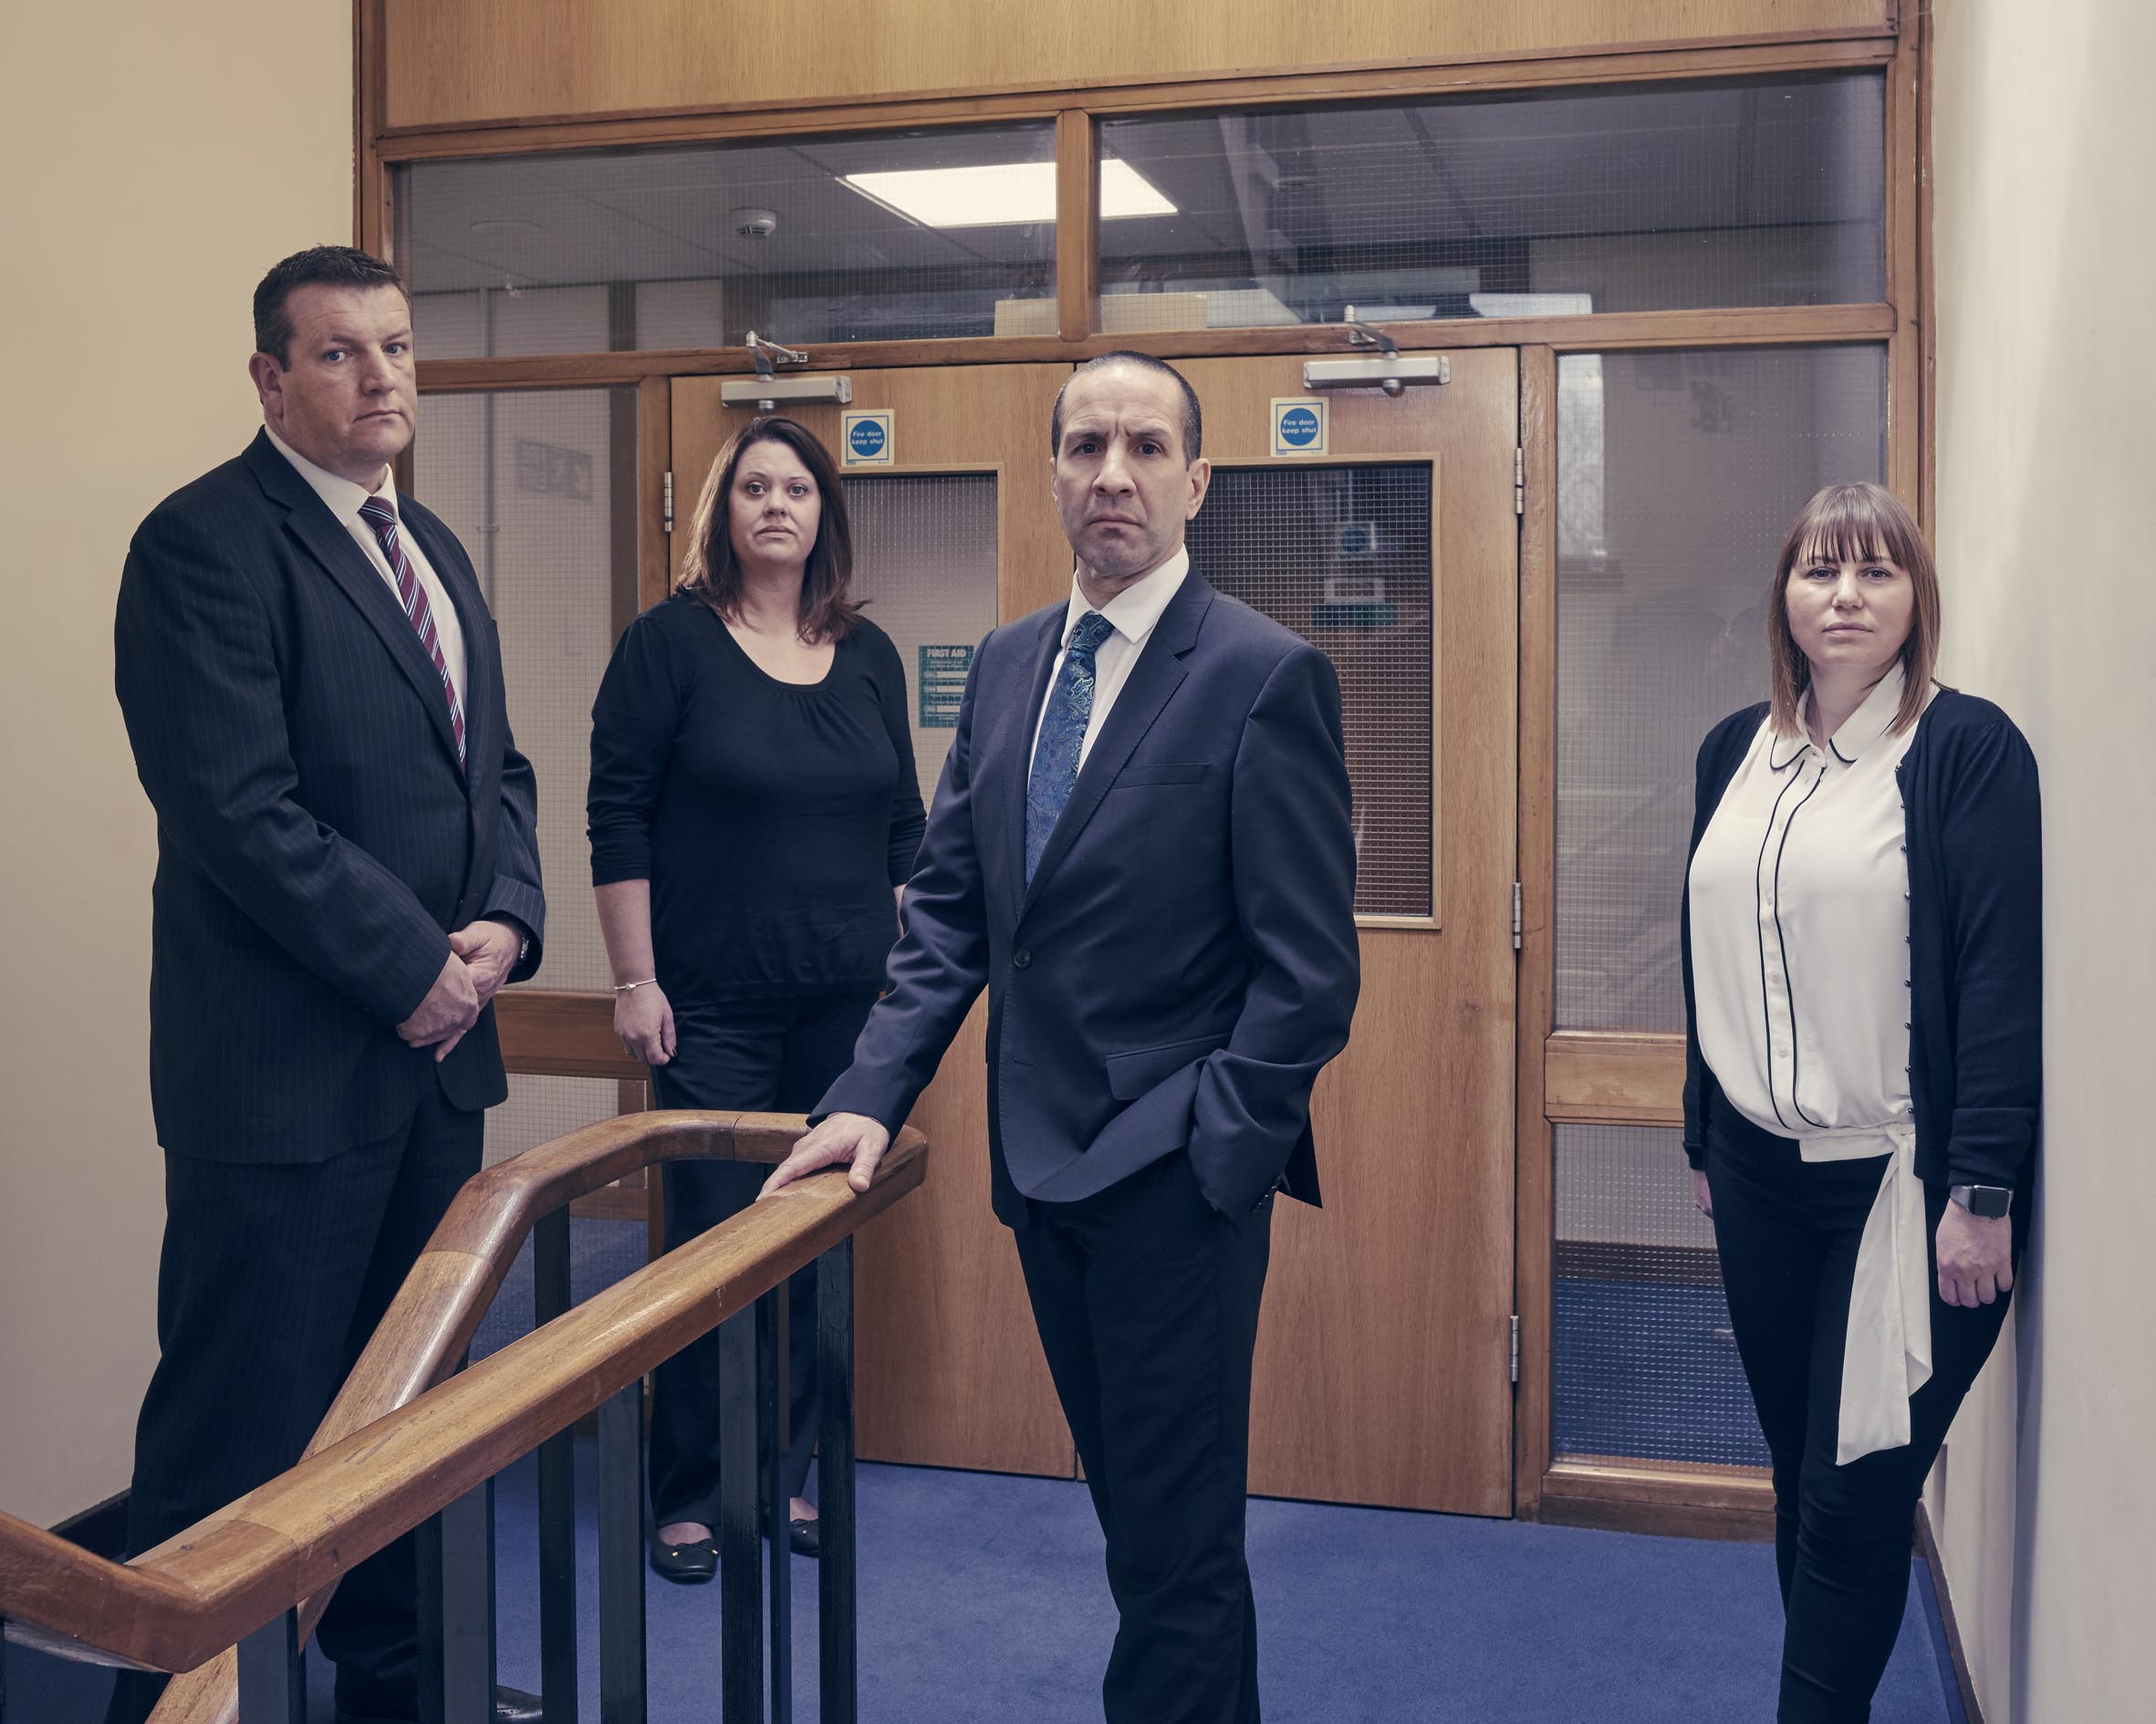 Deputy Stuart Blaik, Natalie Howard- Family Liaison Officer, Senior Investigating Officer Andy Shearwood and Steph Mason- Family Liaison Officer (Channel 4 images)